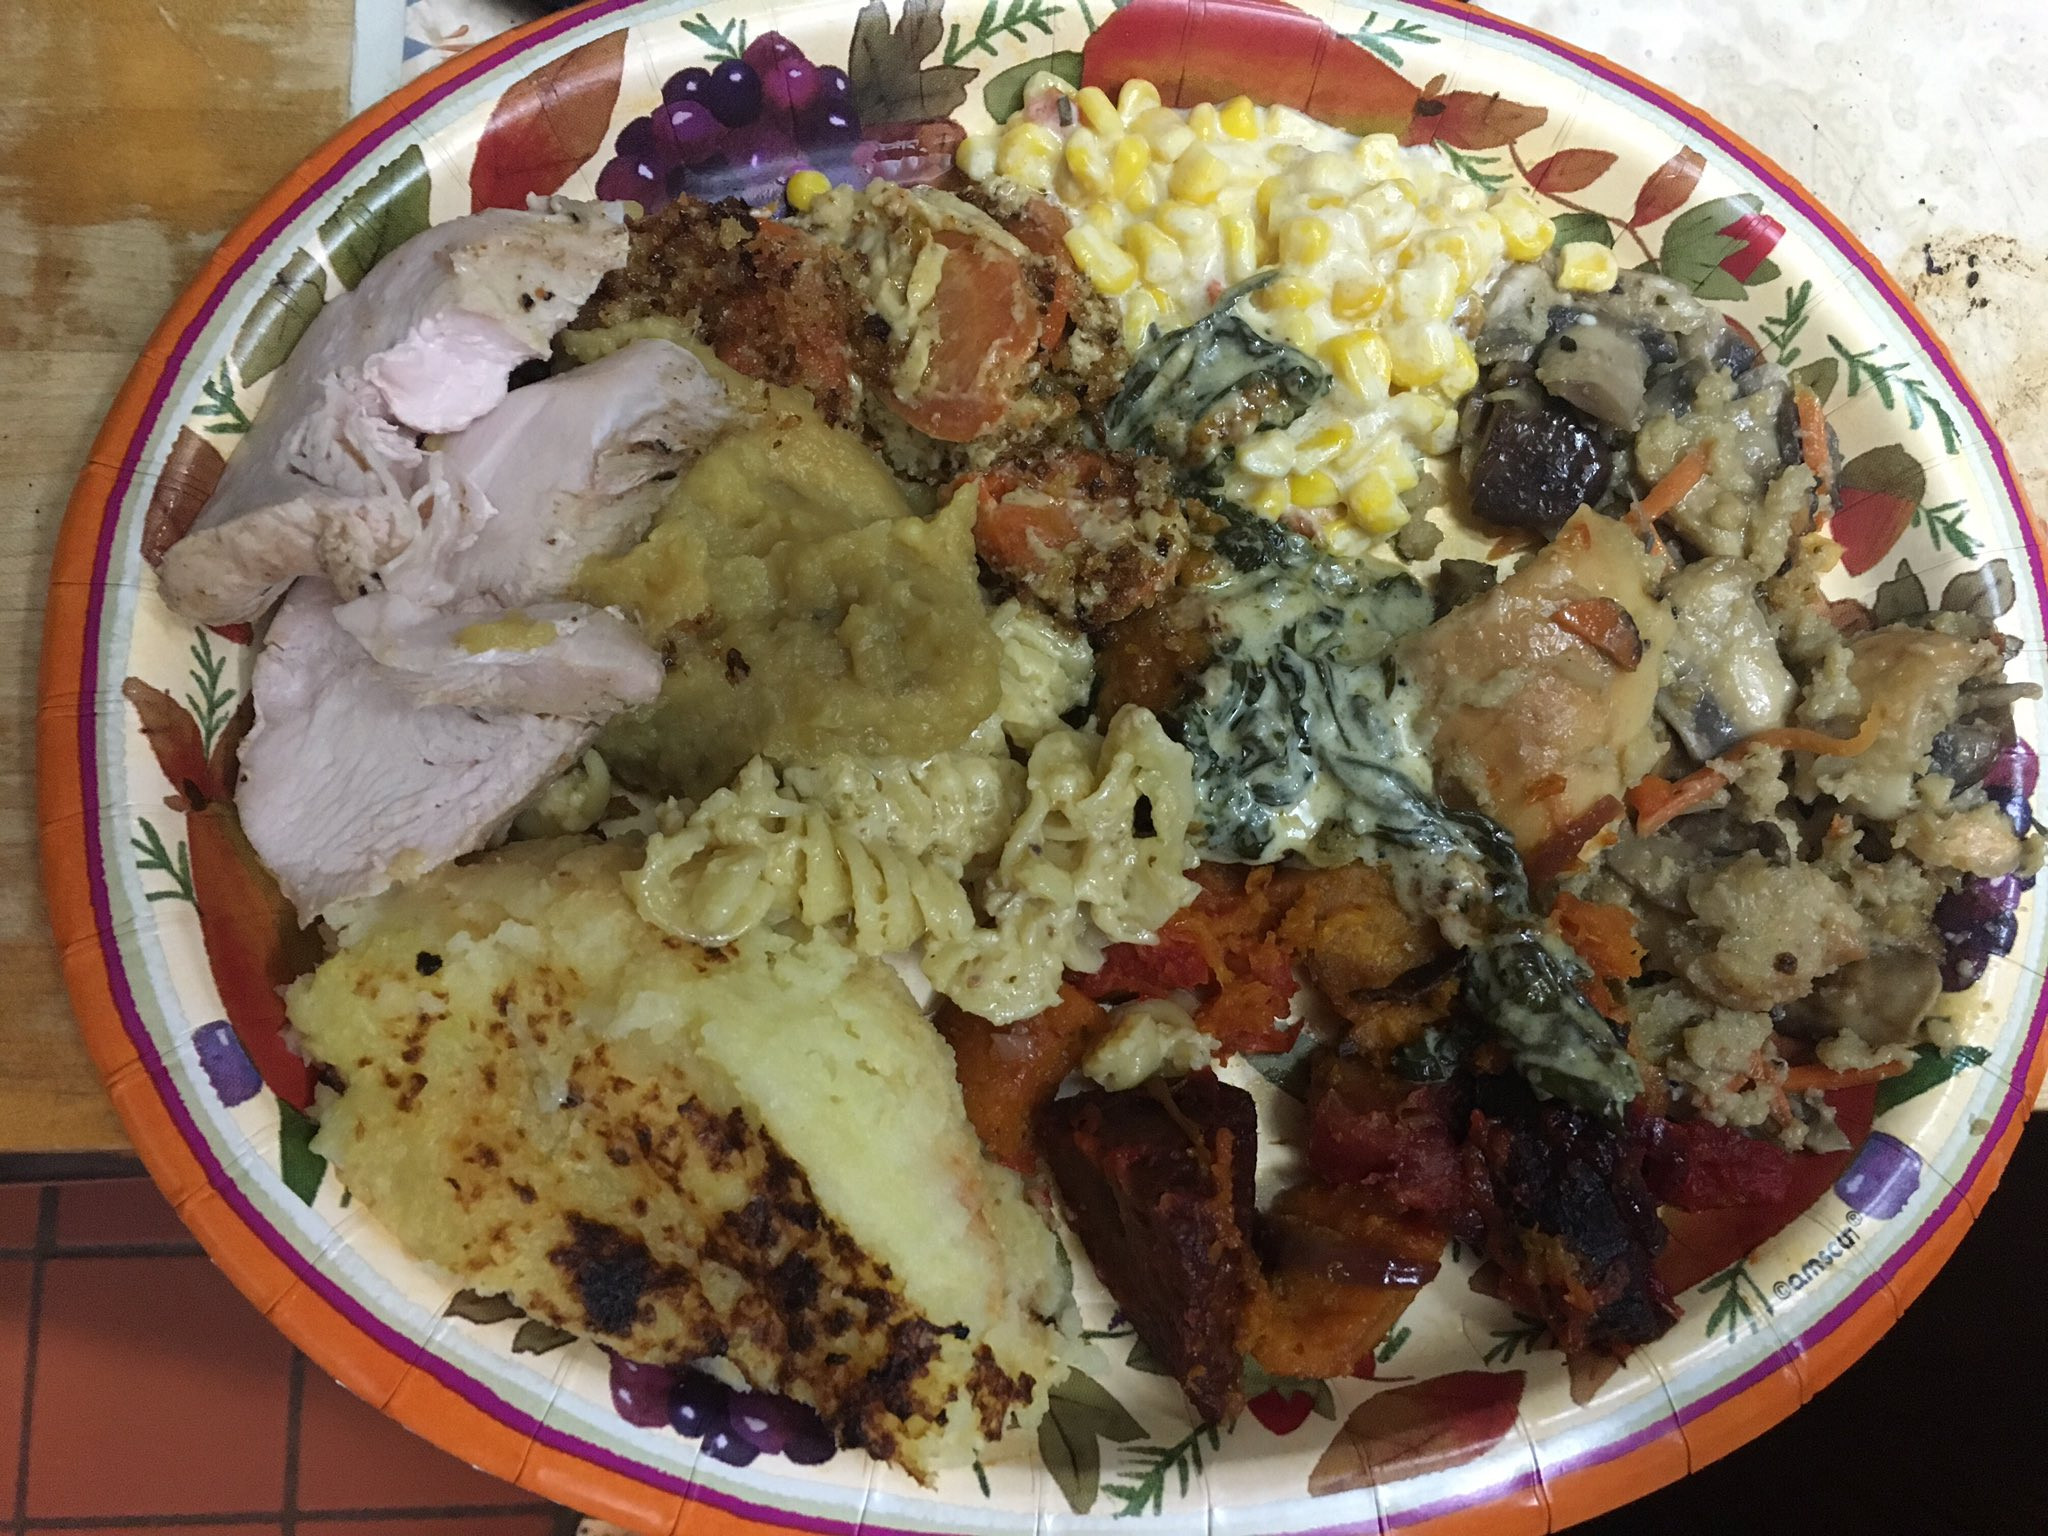 Thanksgiving Dinner Plate  Ian Rapoport Posts His Thanksgiving Plate Twitter Gets